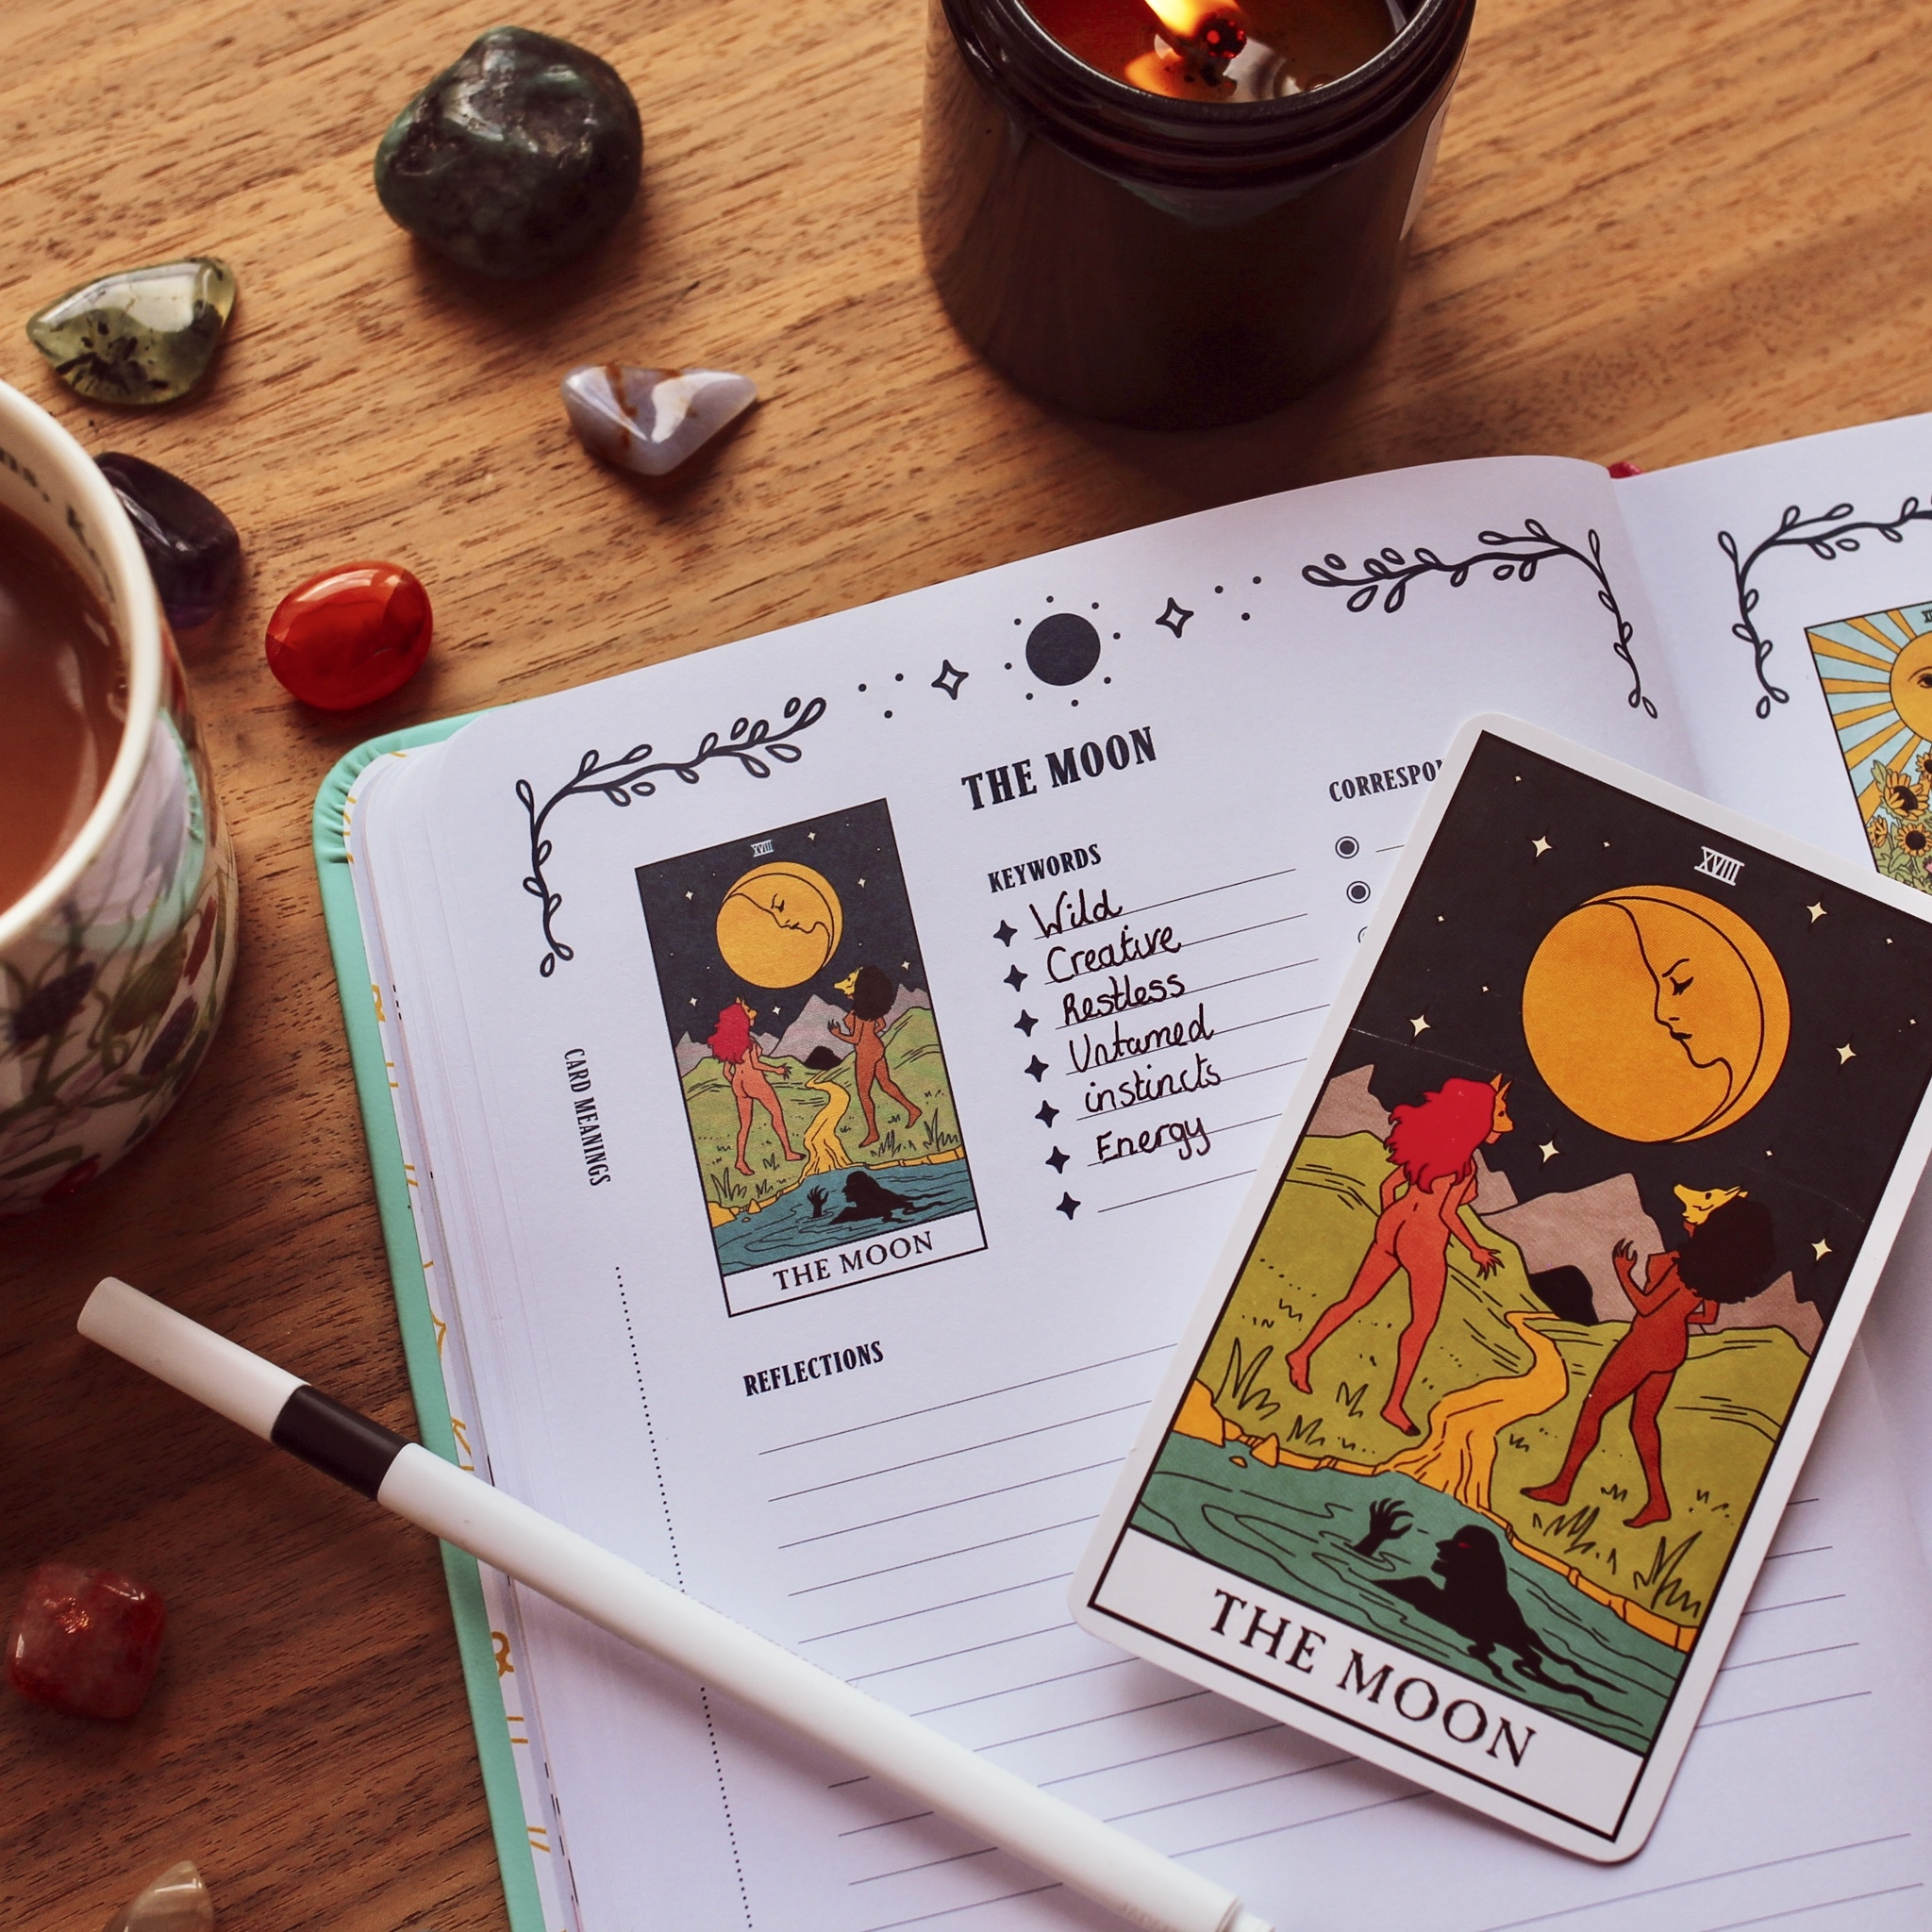 The Moon from Modern Witch Tarot, with the Modern Witch Tarot Journal